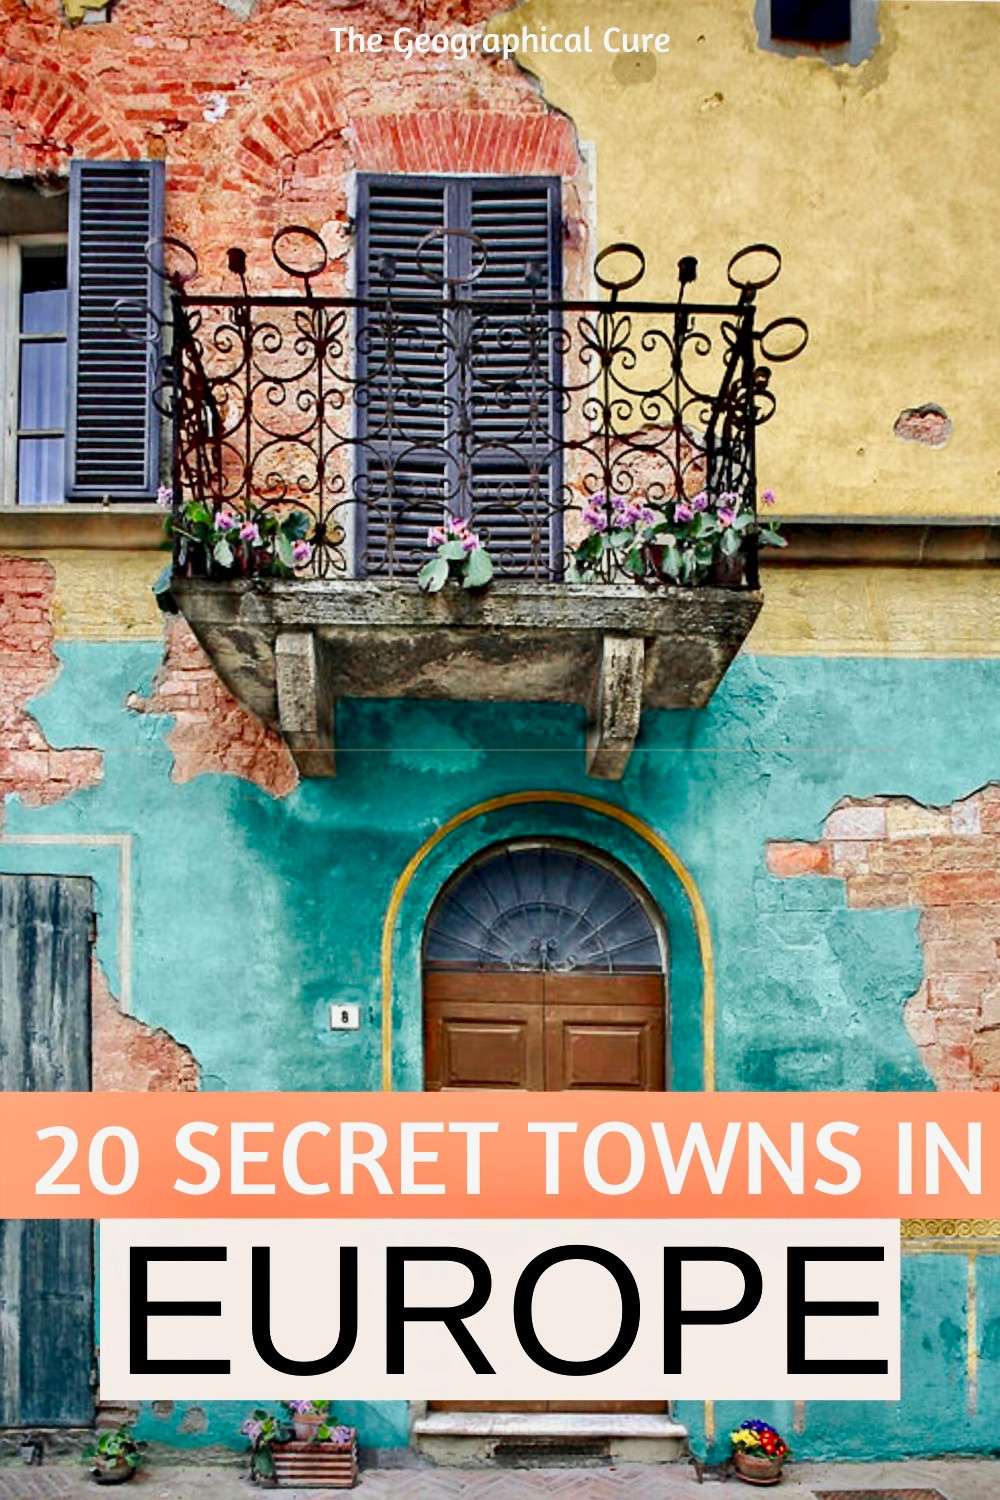 20 secret towns in Europe for your bucket list